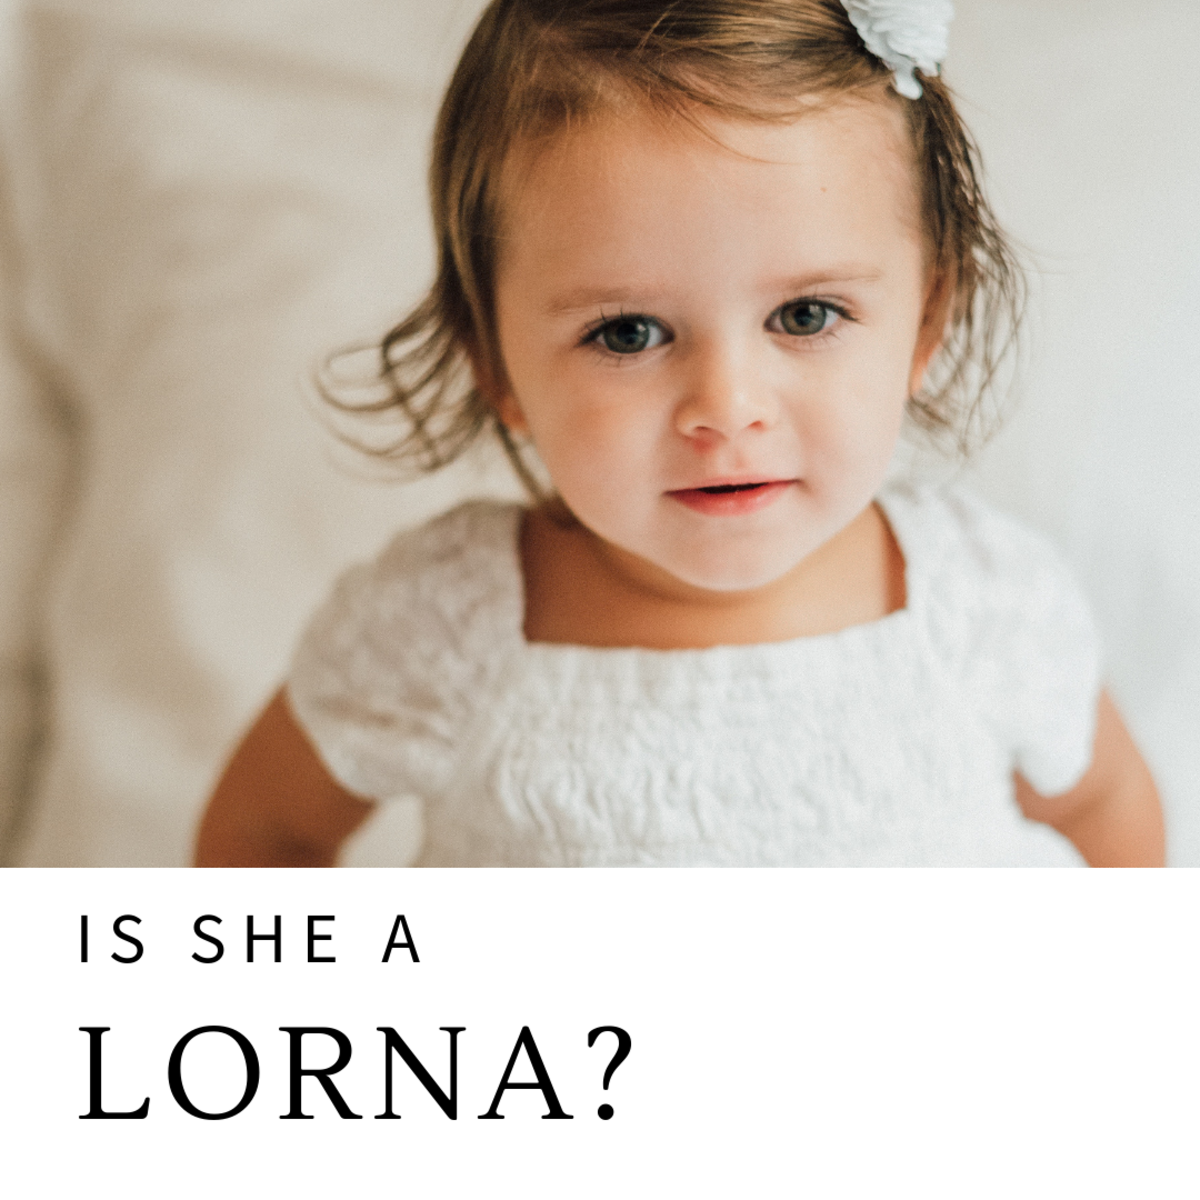 Is she a Lorna?